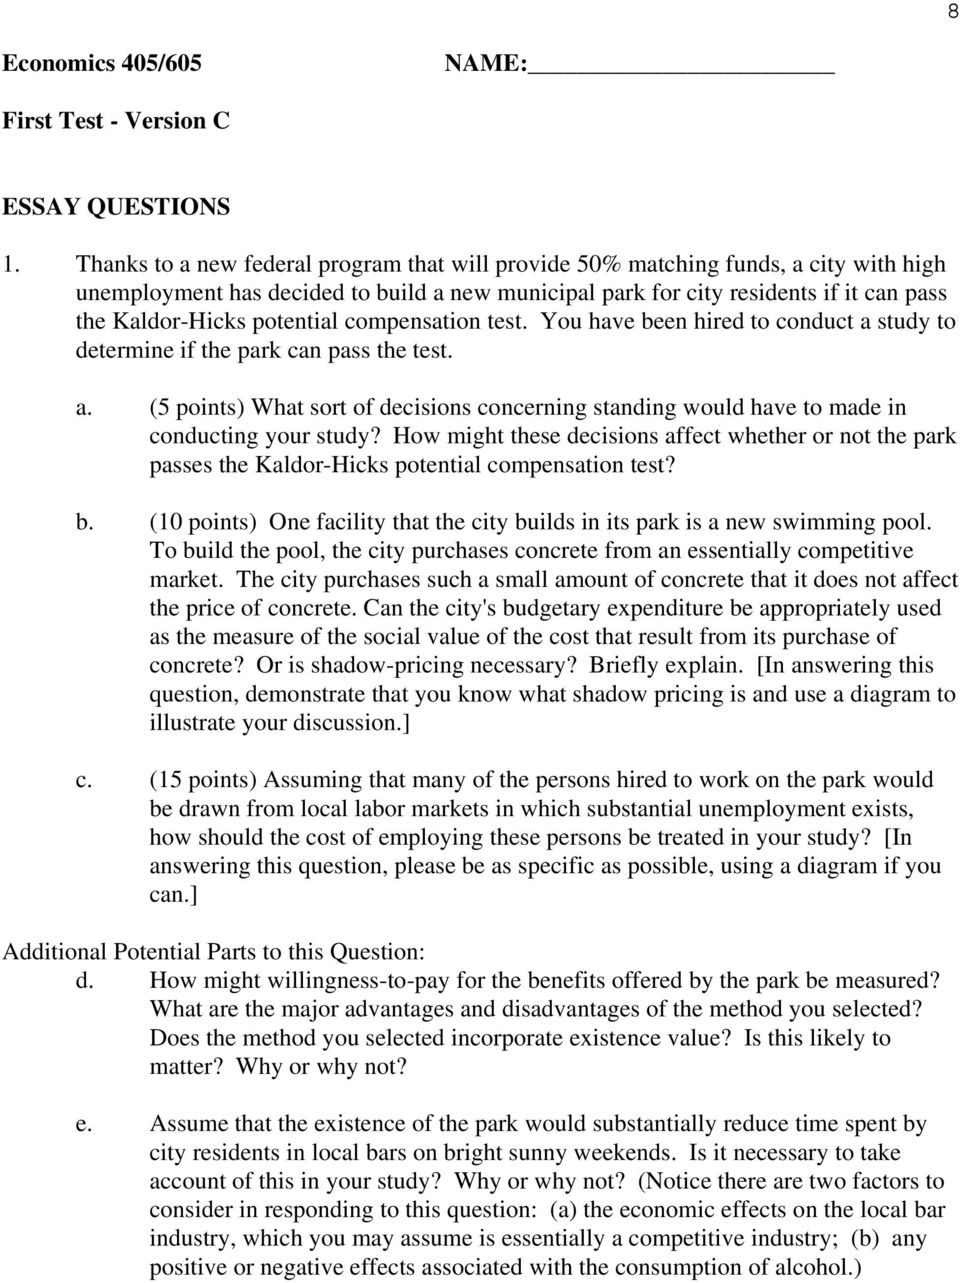 advantages and disadvantages of essay type tests english teaching worksheets advantages and disadvantages study com test question types methodology article